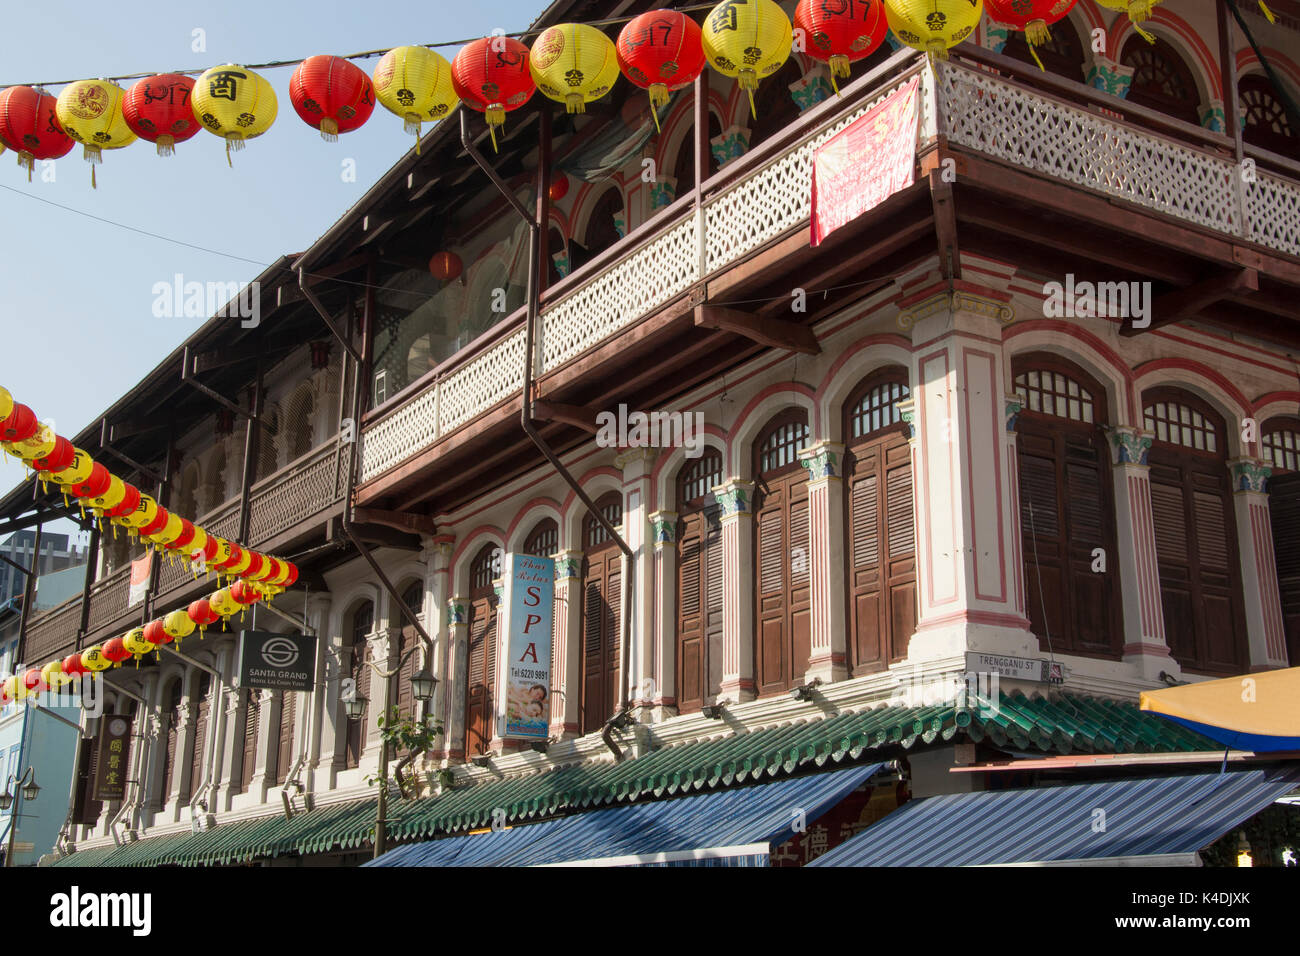 Restored hotel building on Temple Street, a busy tourist precinct in Chinatown, Singapore - Stock Image